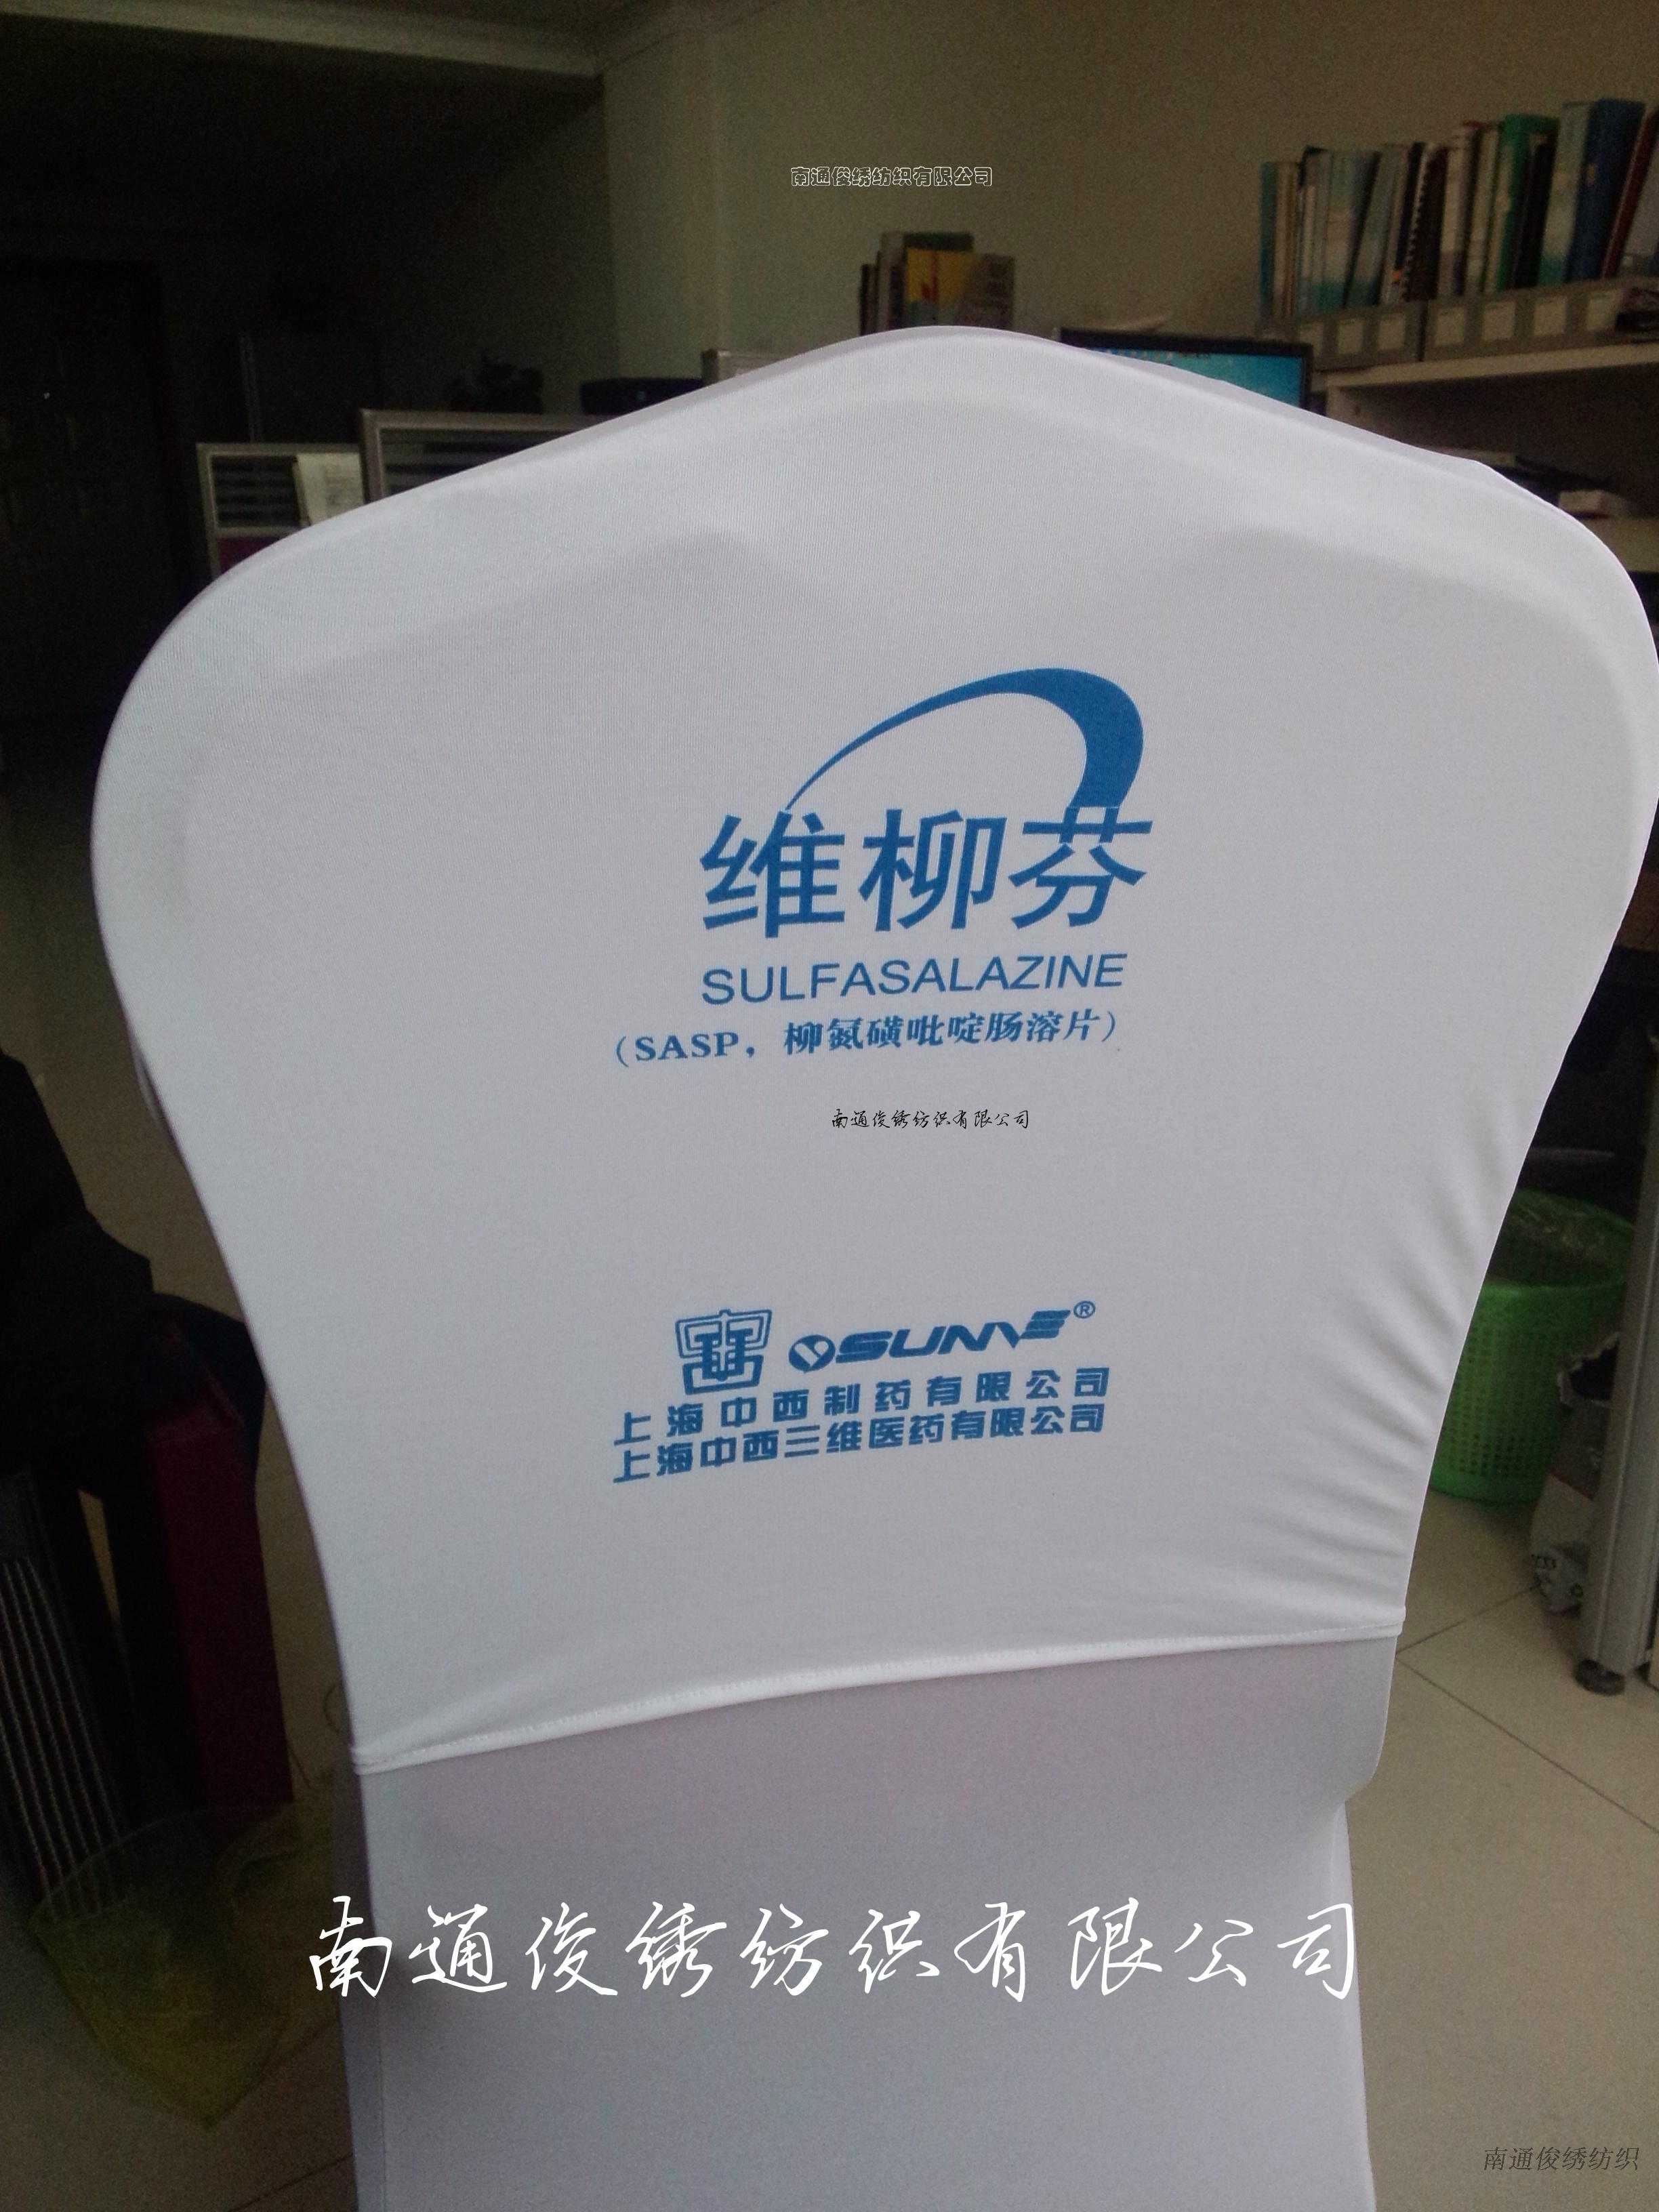 Professional Custom Seat Cover Restaurant With LOGO Ads Stretch Banquet Chair Backrest Sleeve Suit Jacket